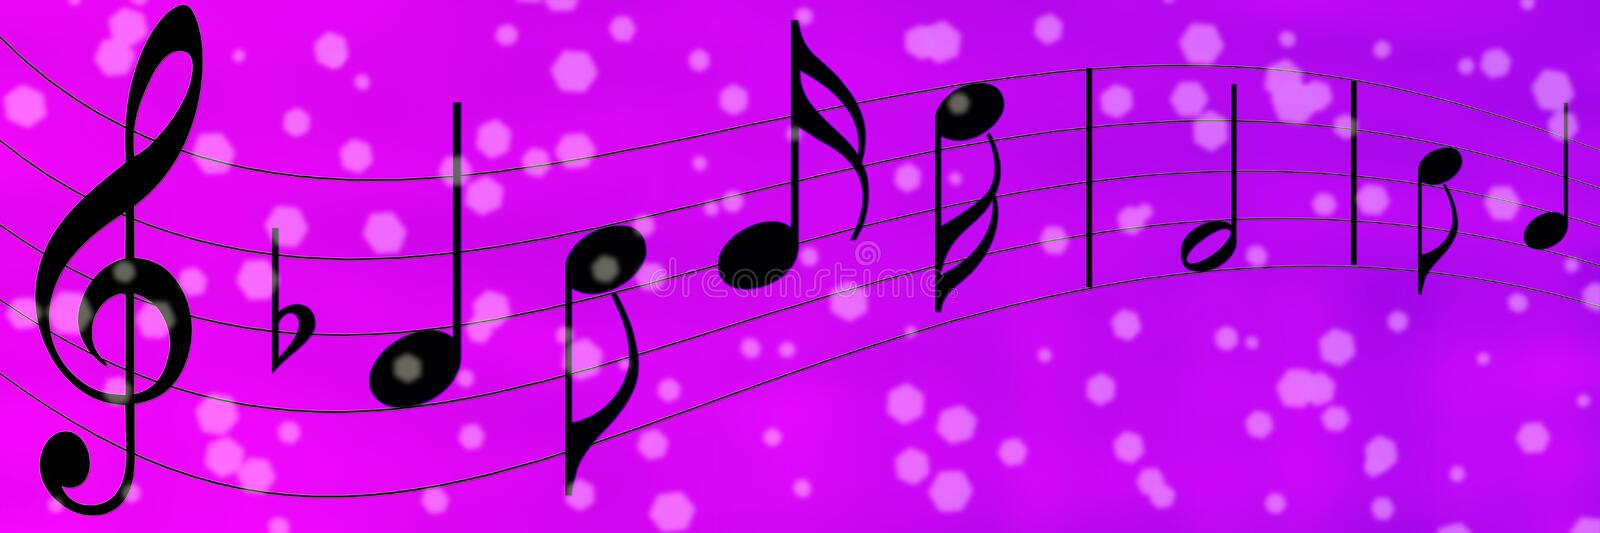 Black Music Notes in Purple and Violet Banner Background royalty free illustration